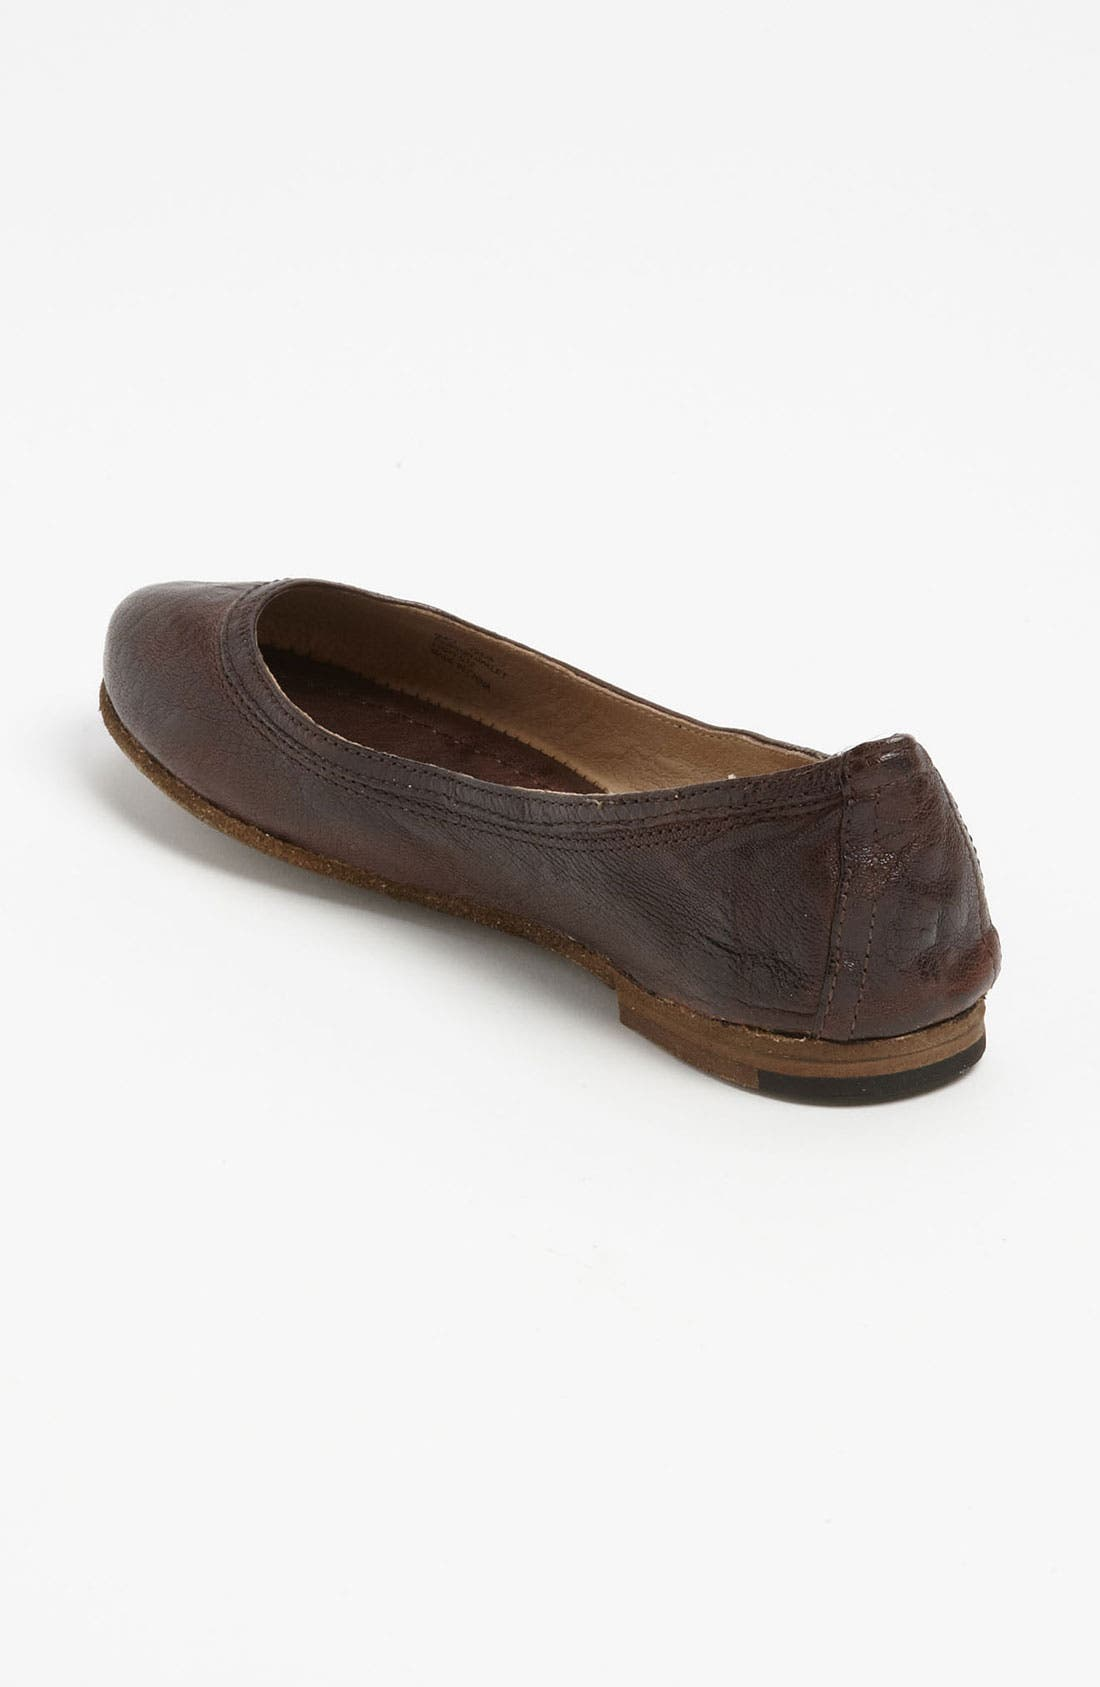 Alternate Image 2  - Frye 'Carson' Ballet Flat (Women)